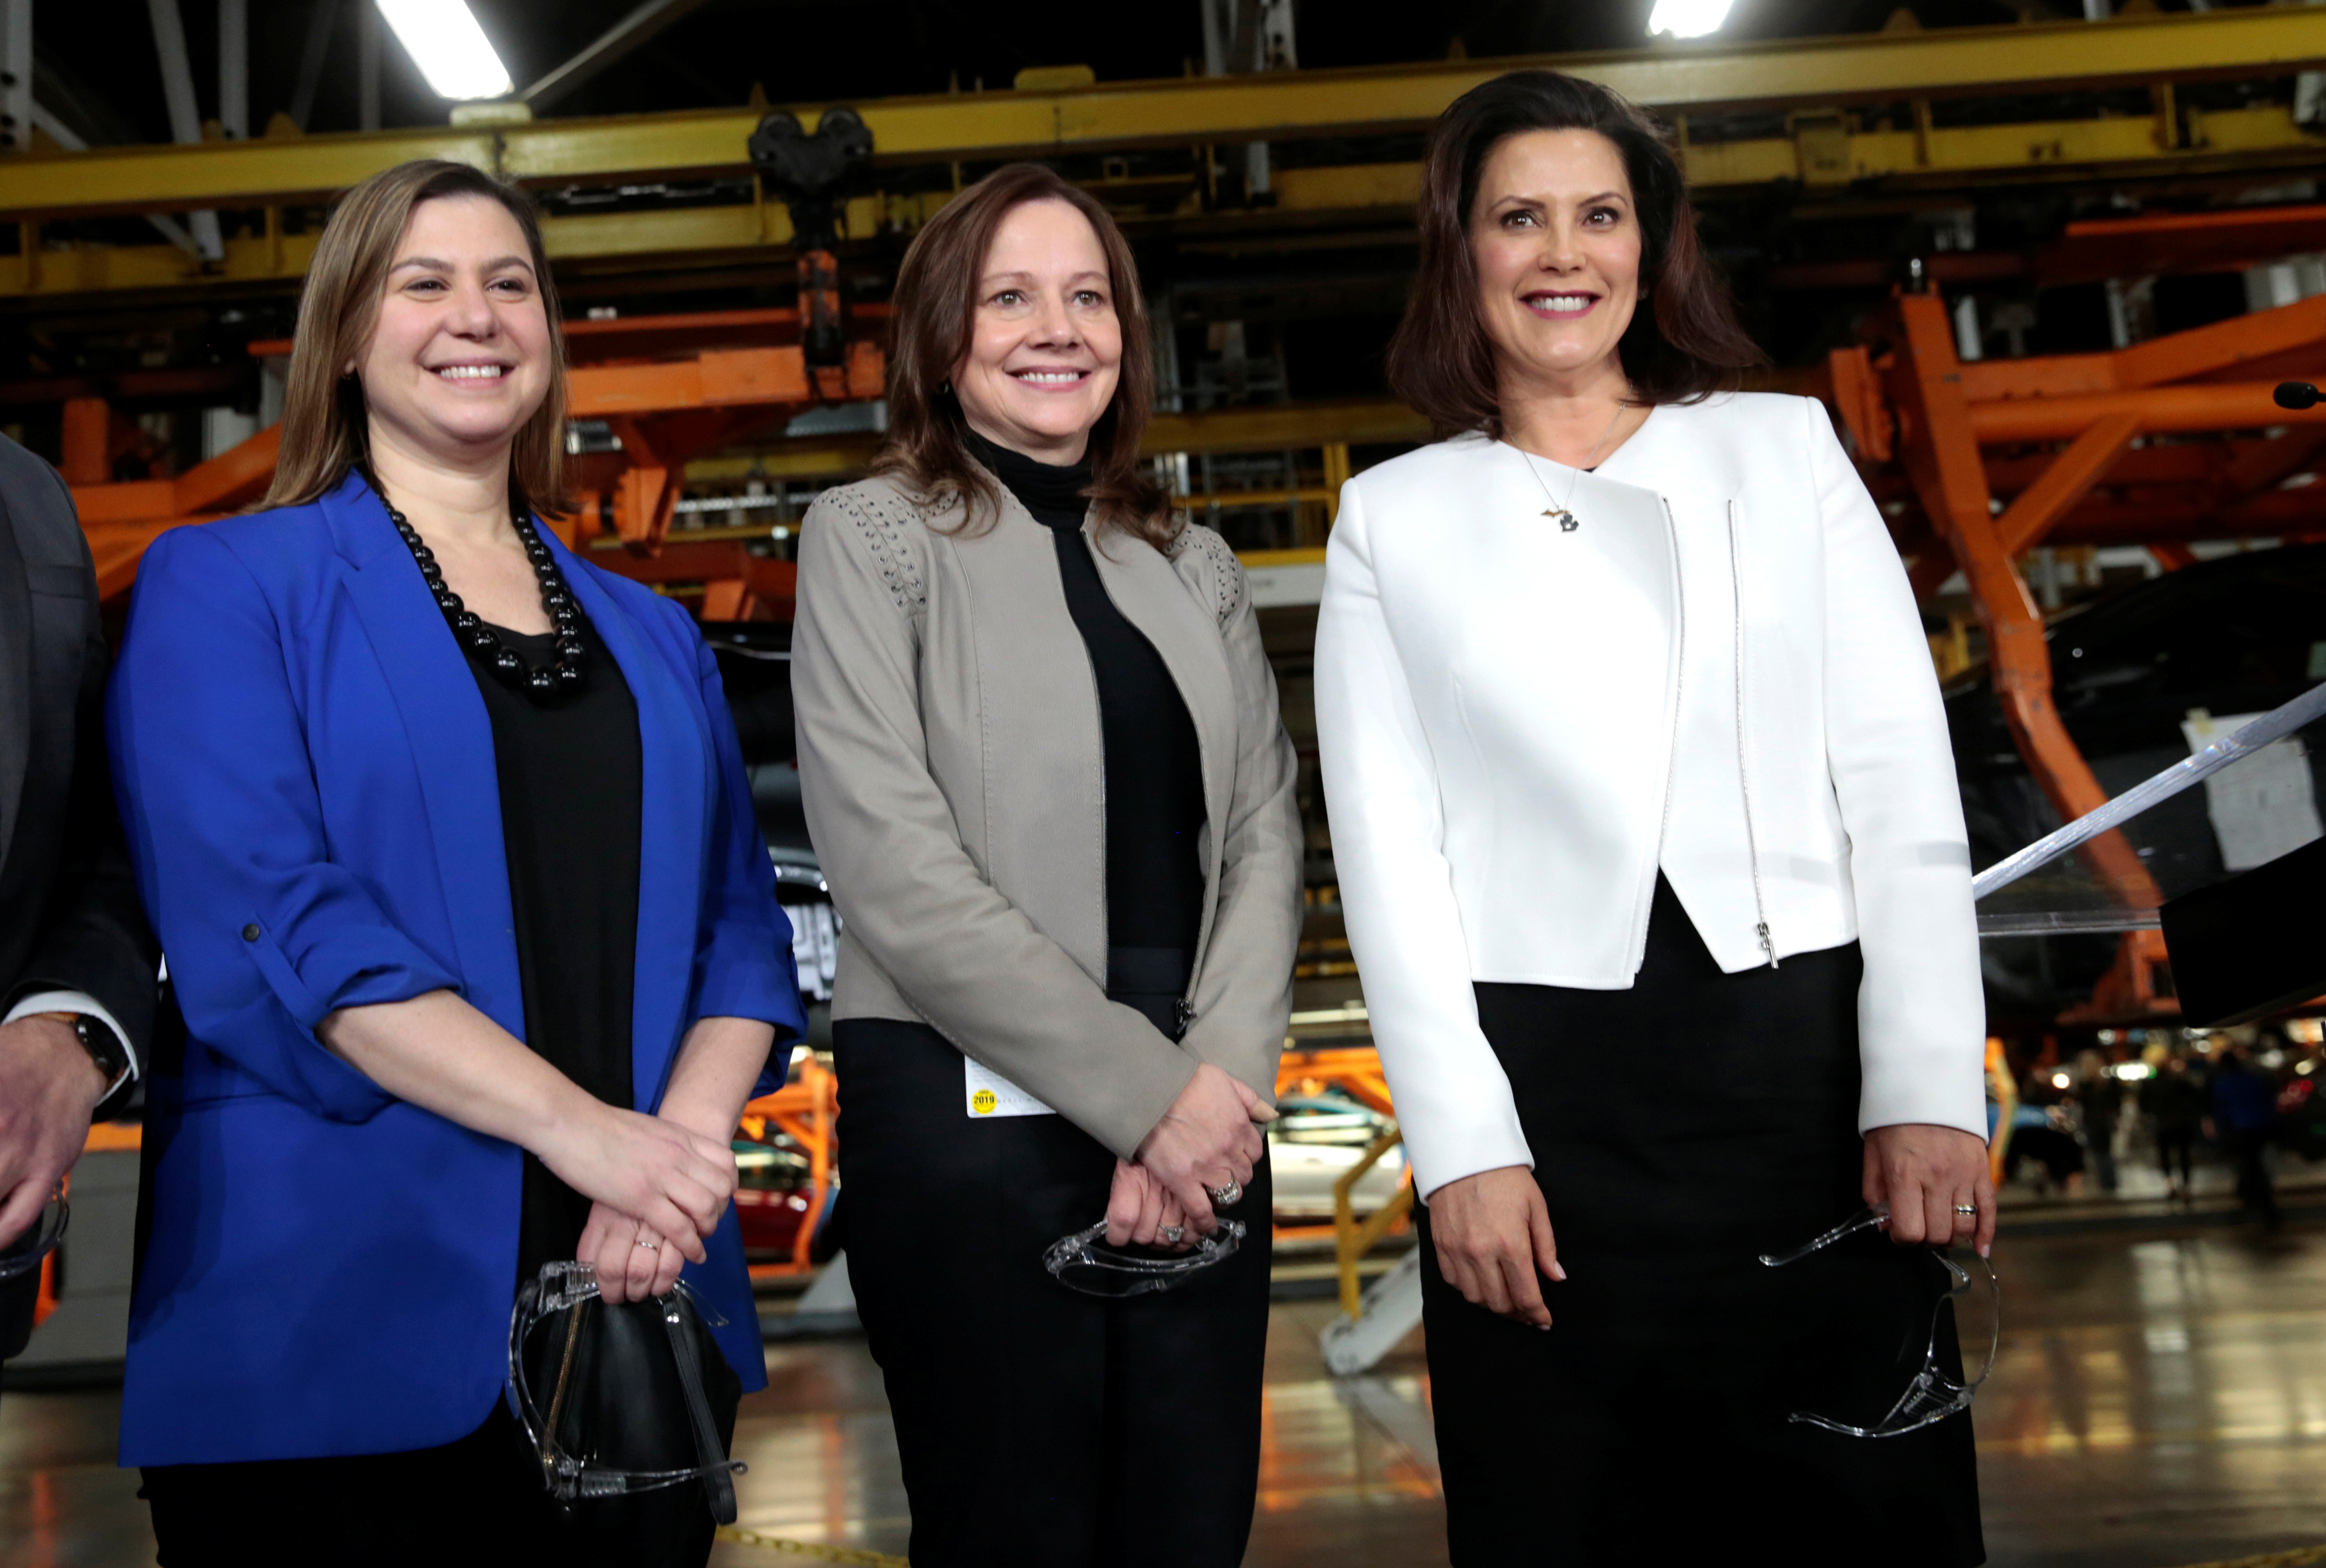 General Motors Chief Executive Officer Mary Barra poses with Democratic Representative Elissa Slotkin and Michigan Governor Gretchen Whitmer at the GM Orion Assembly Plant in Lake Orion, Michigan, U.S. March 22, 2019. REUTERS/Rebecca Cook